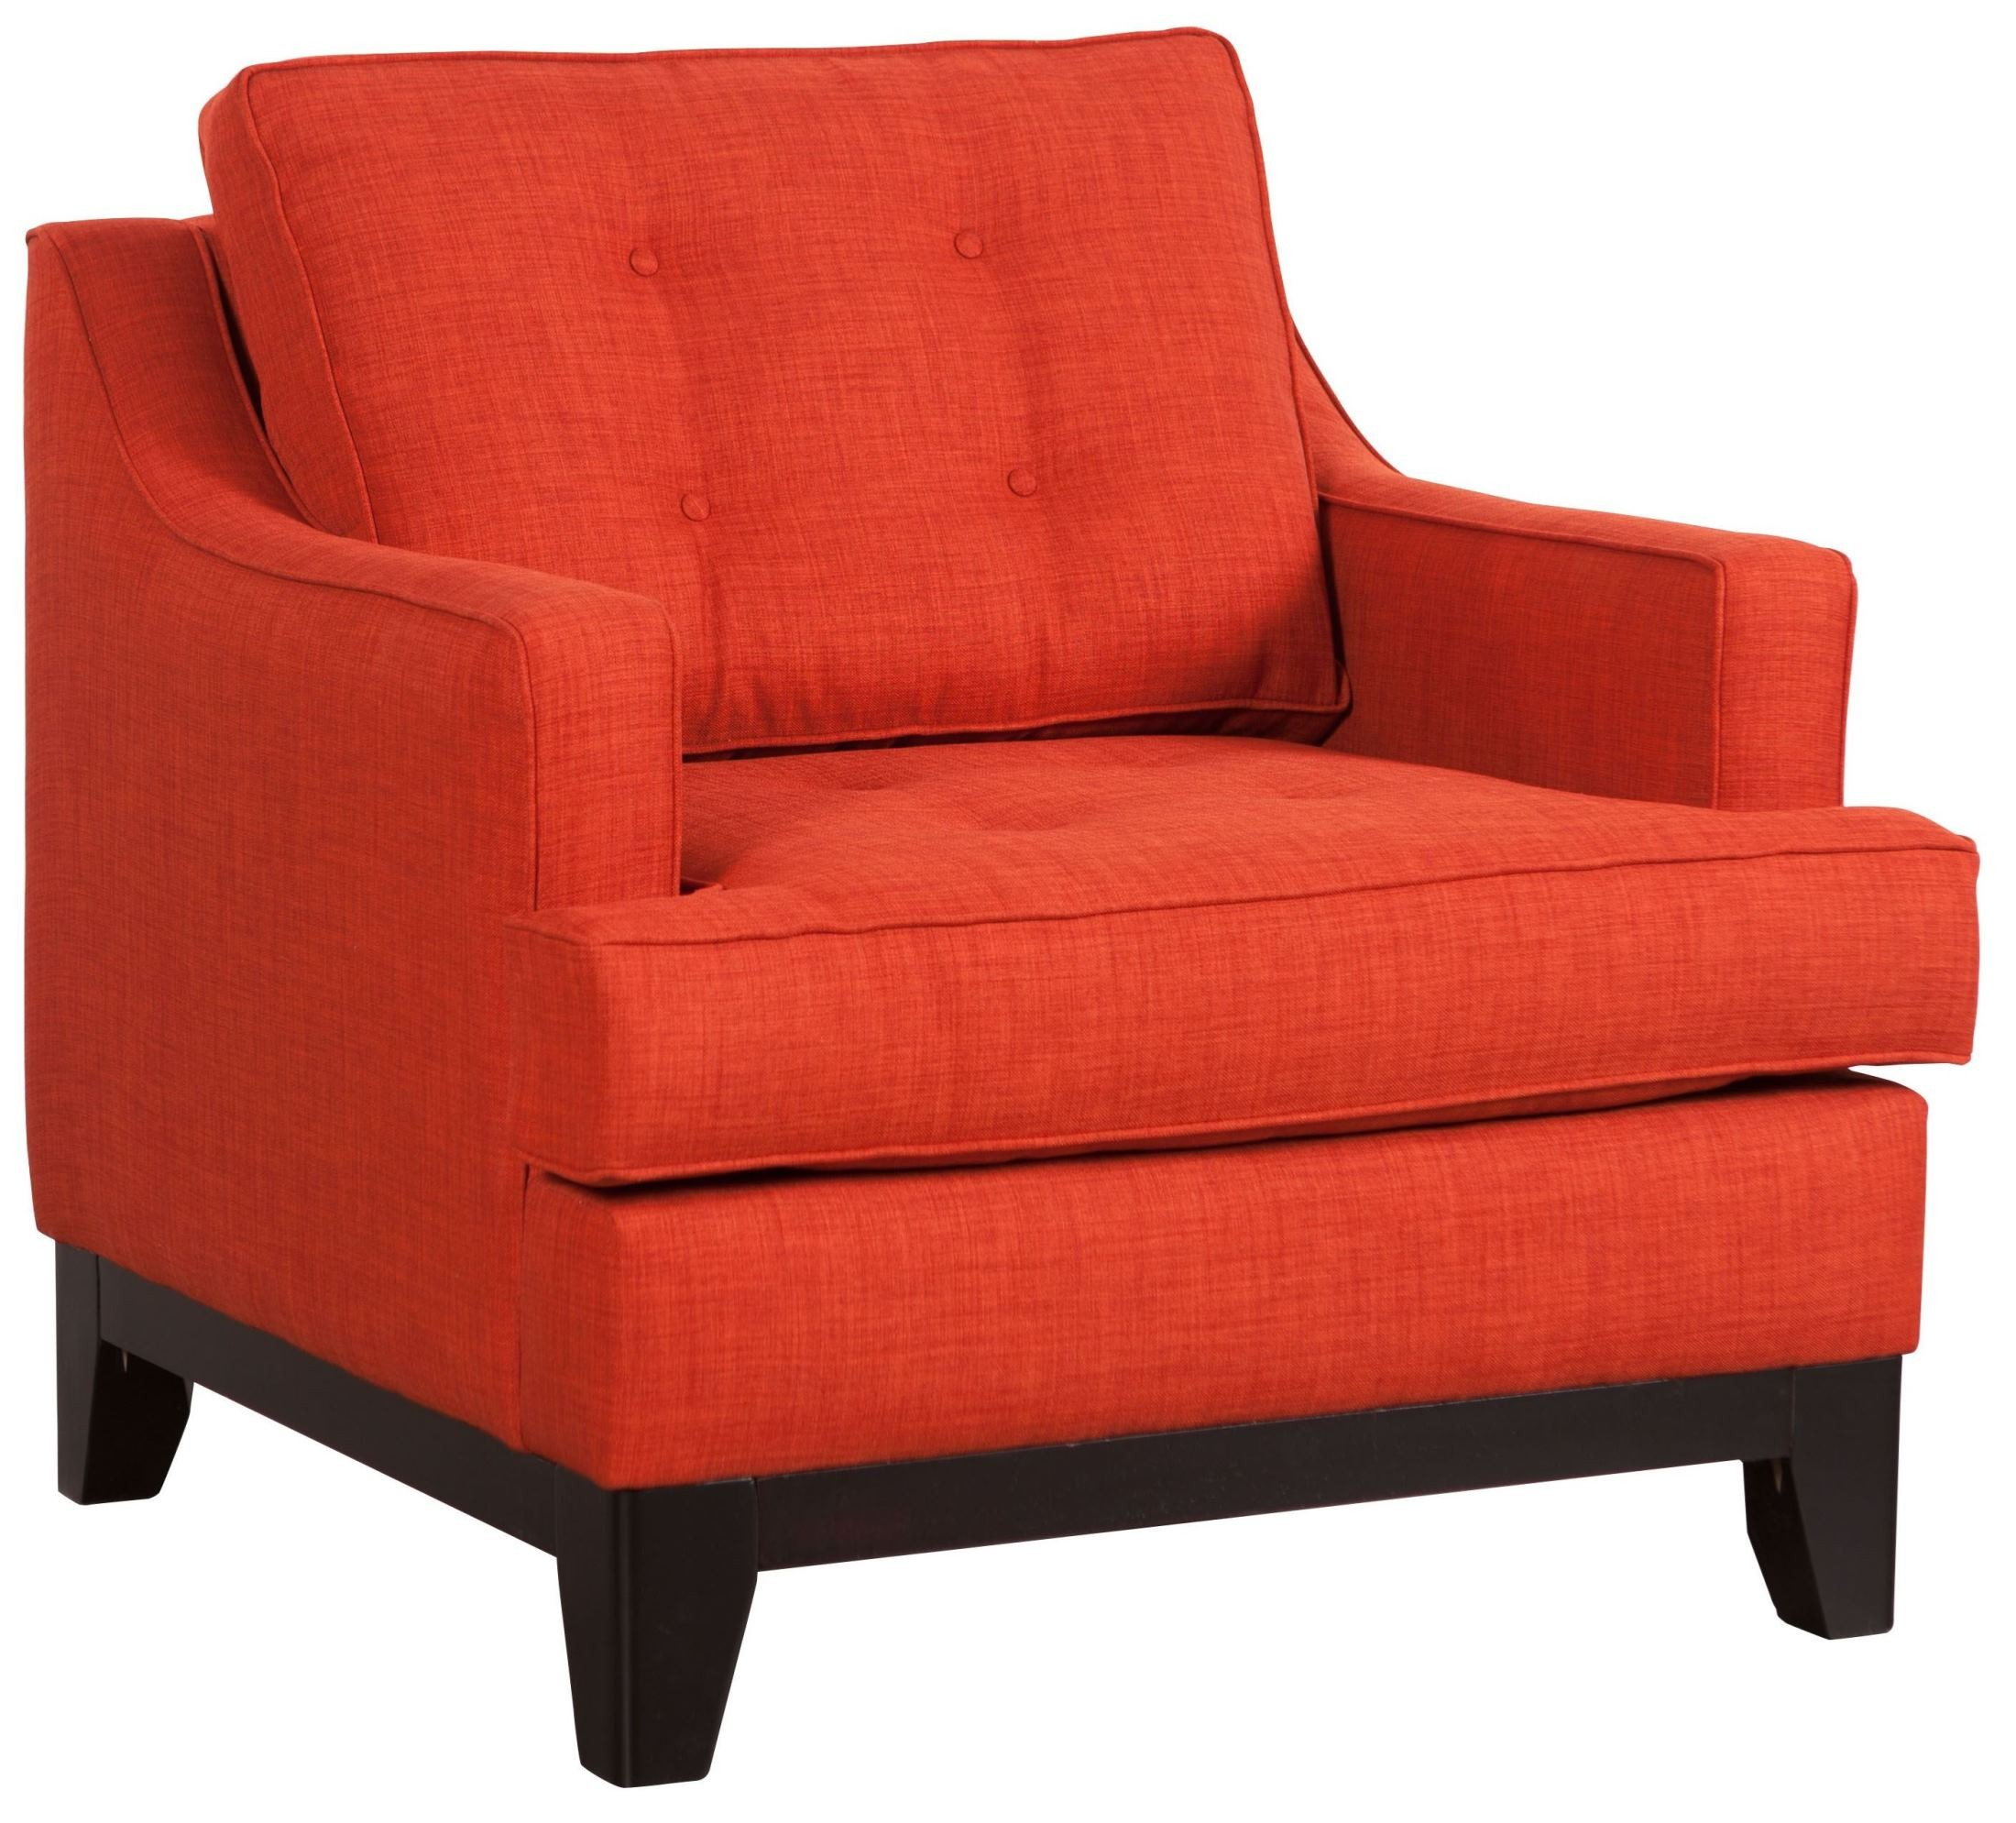 Orange Living Room Chair Chicago Burnt Orange And Charcoal Living Room Set From Zuo